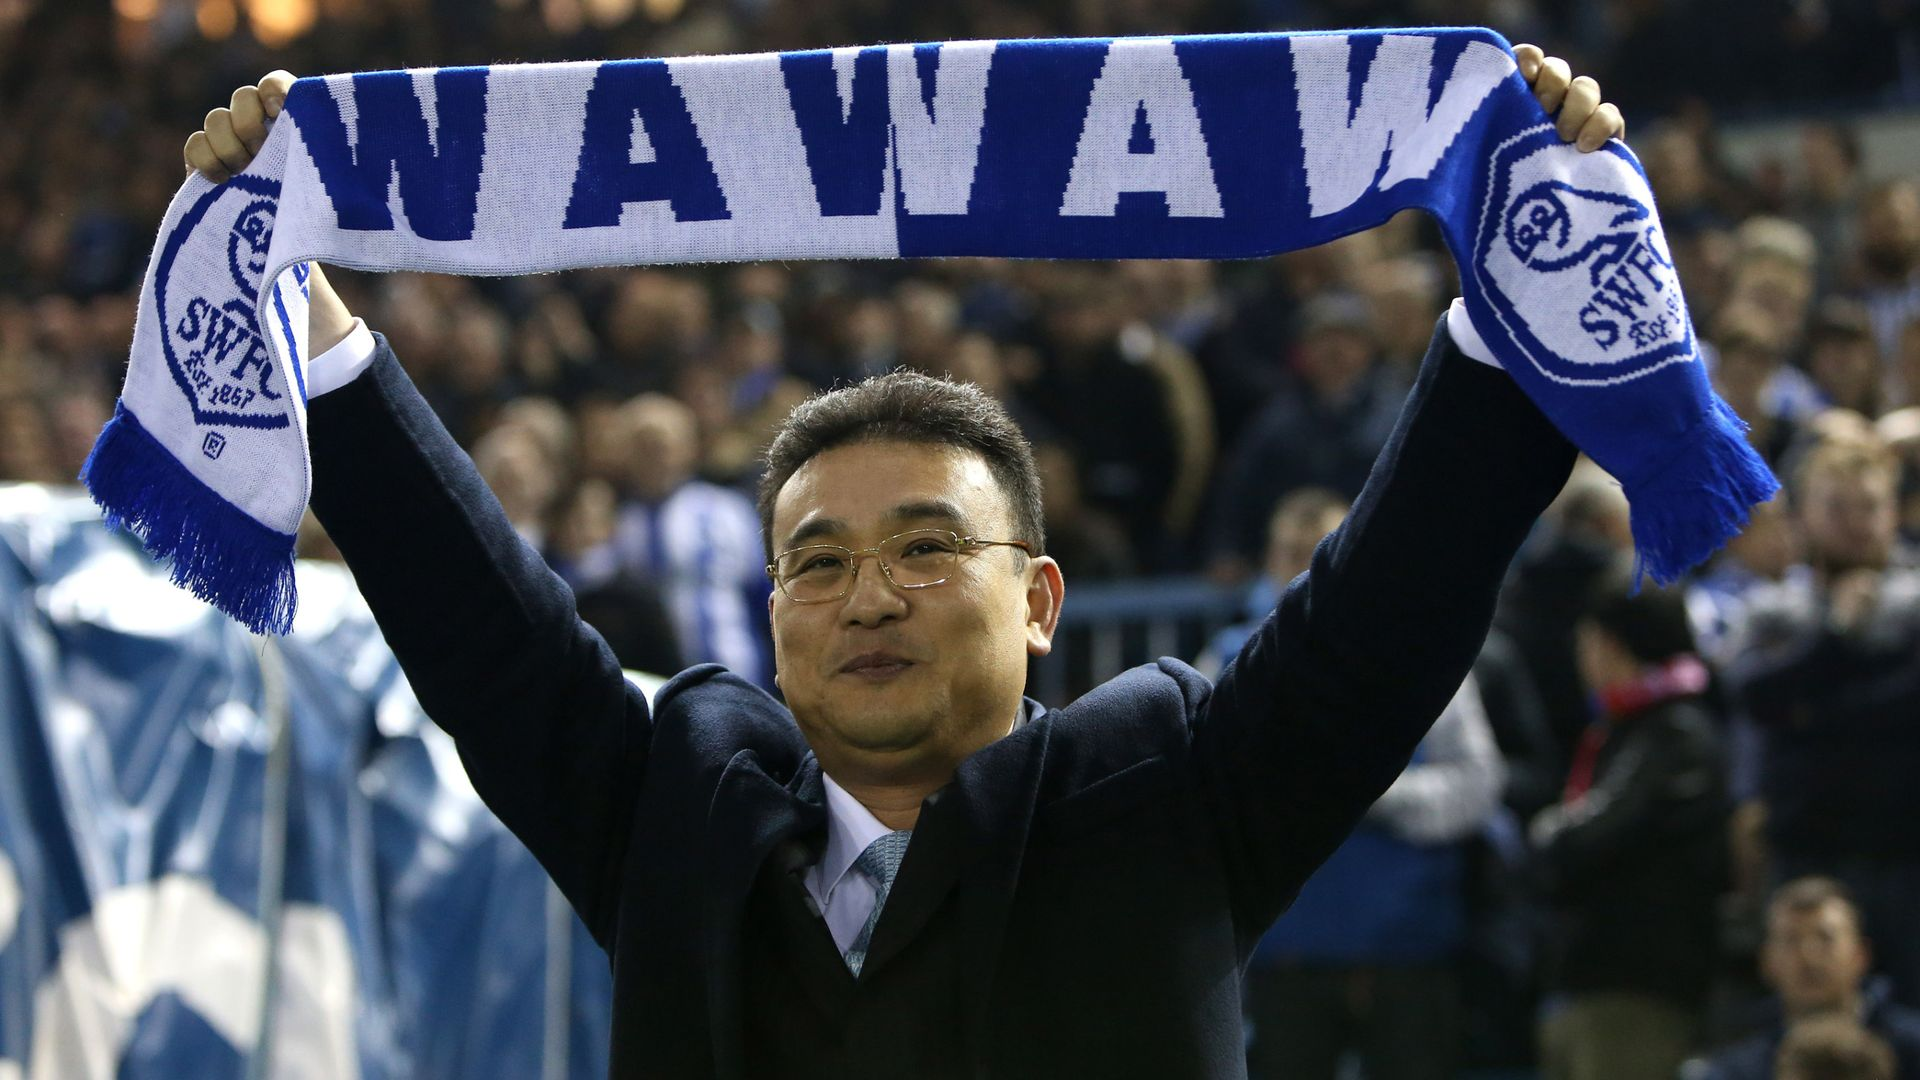 Chansiri rejects Alonso's offer to buy Sheff Wed